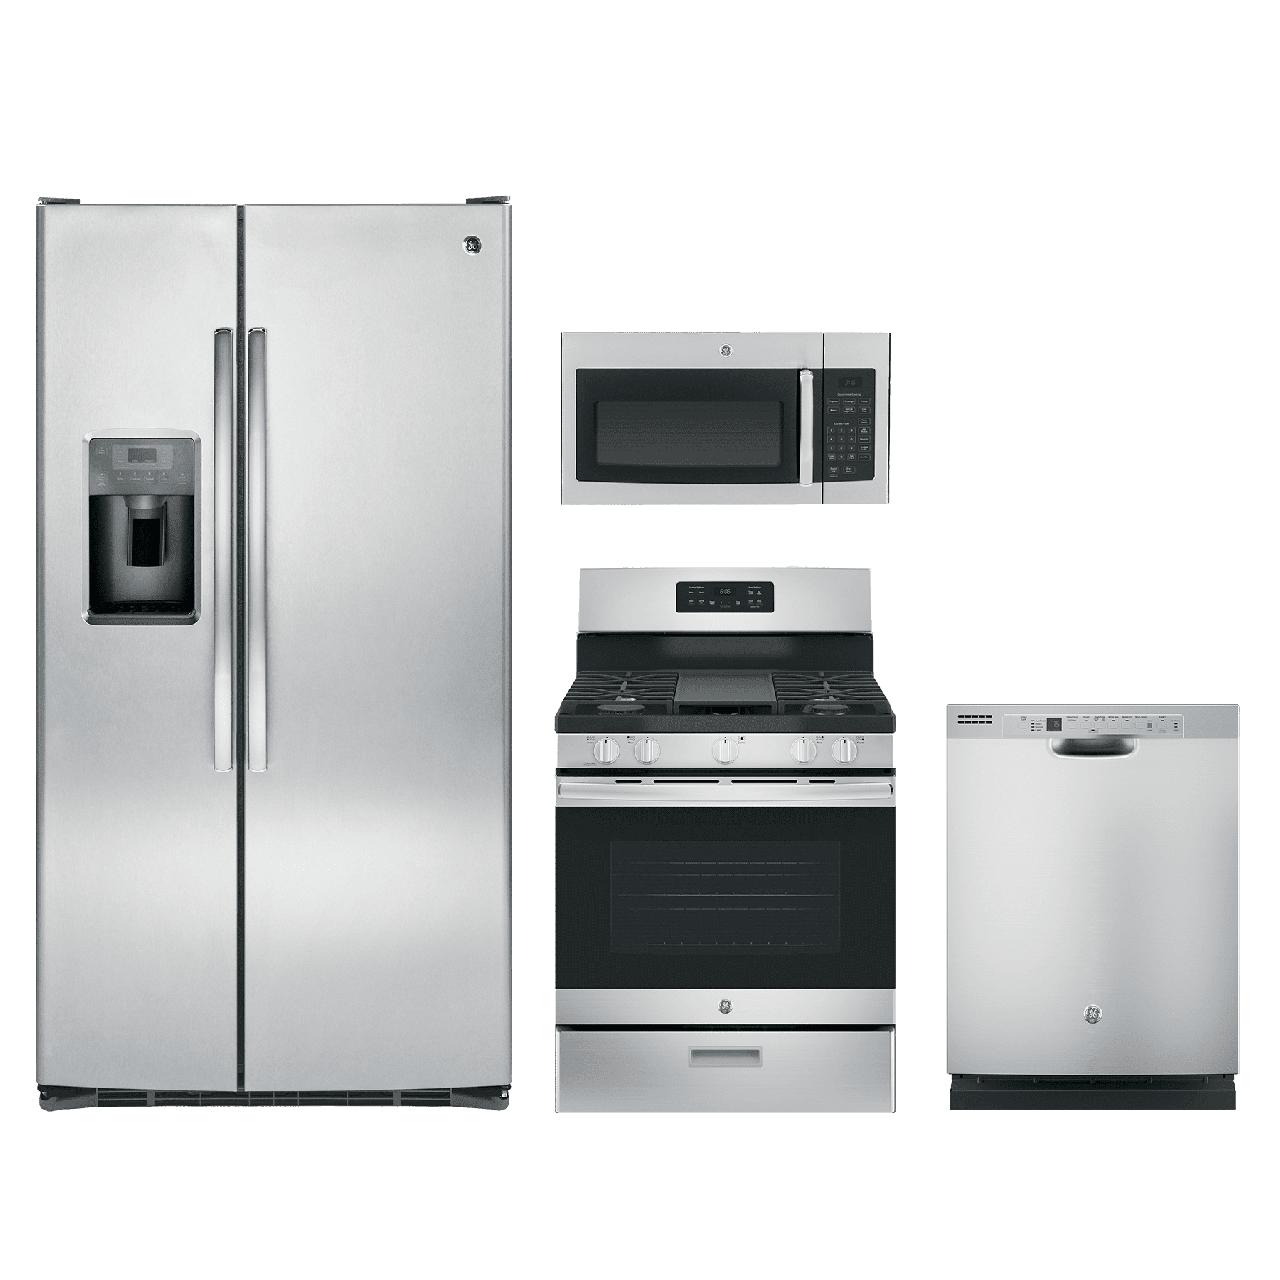 package flush series image kitchen and a modern countertops with stainless cabinets design appliances name ge wood profile htm dispatcher steel for requesttype appliance